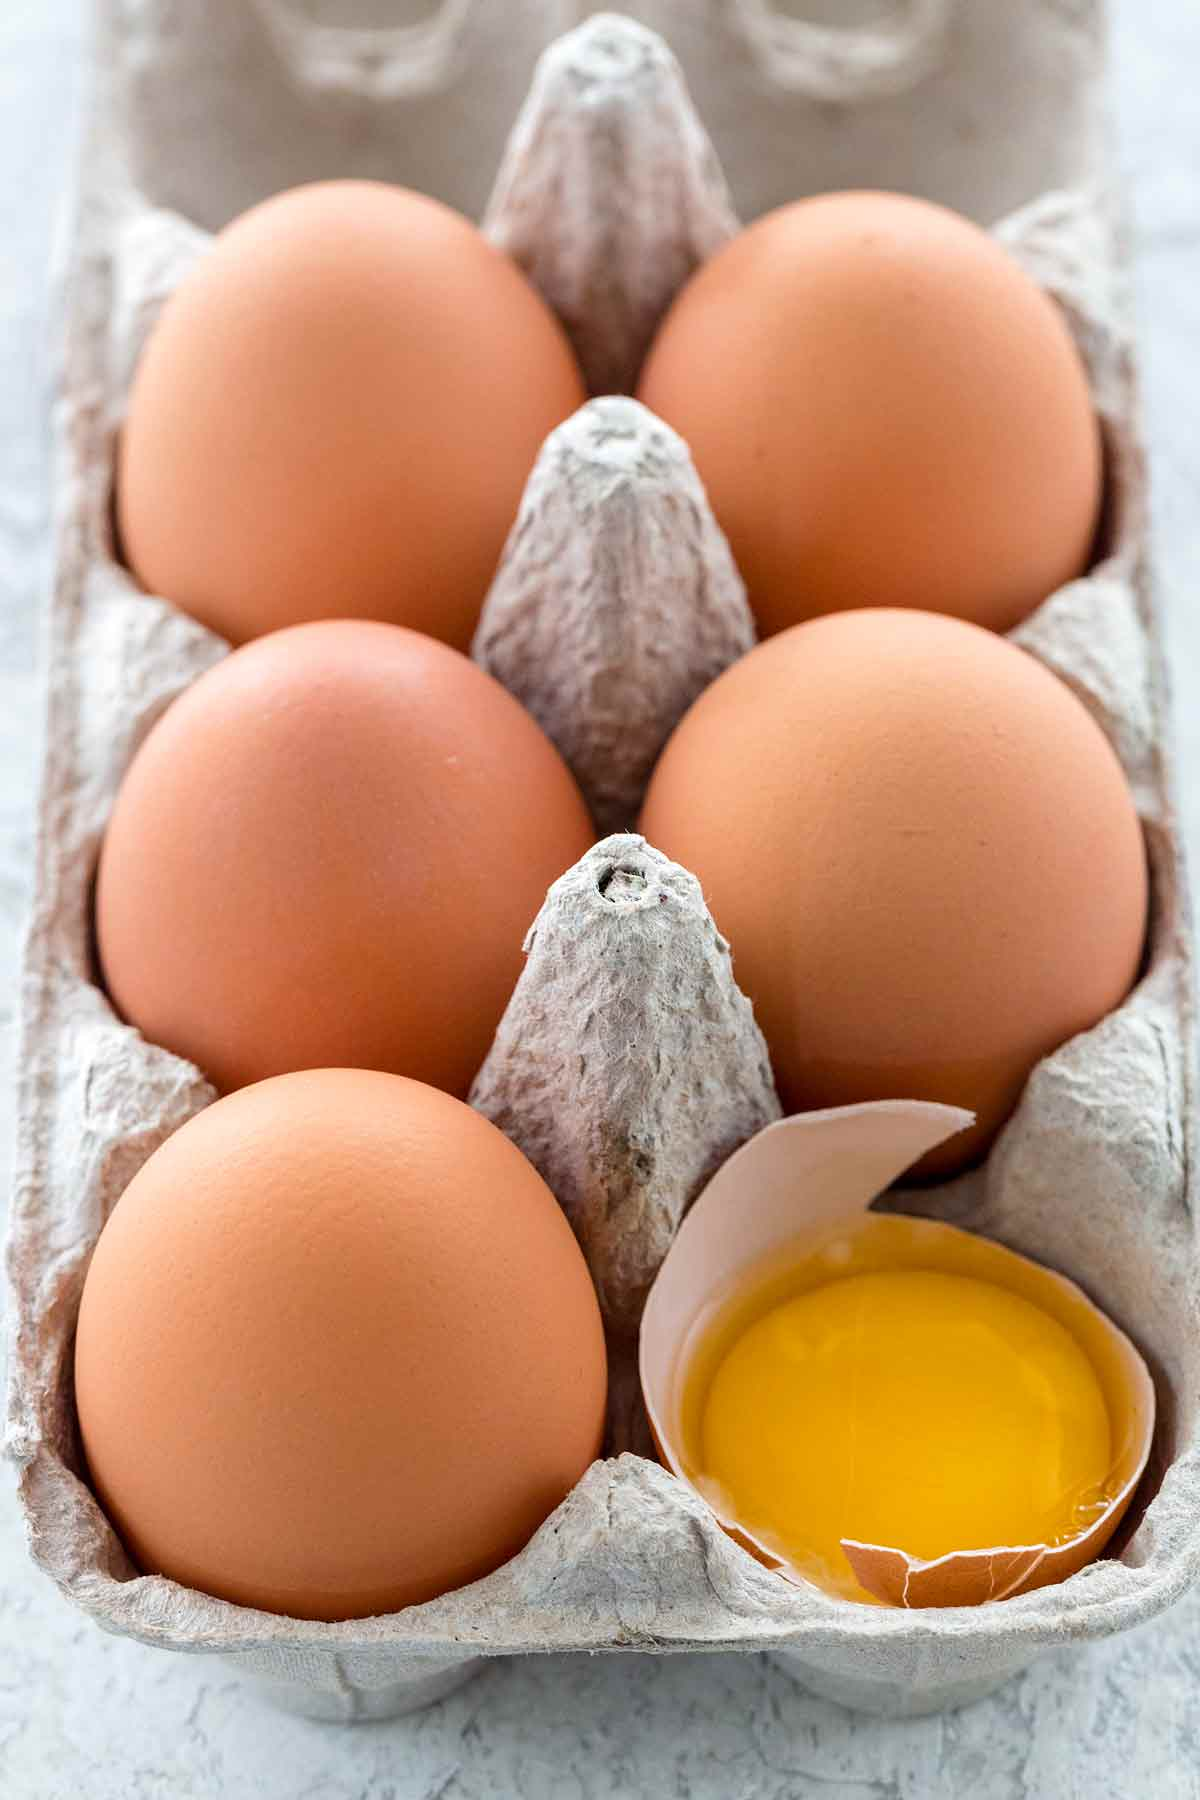 Open carton of brown eggs